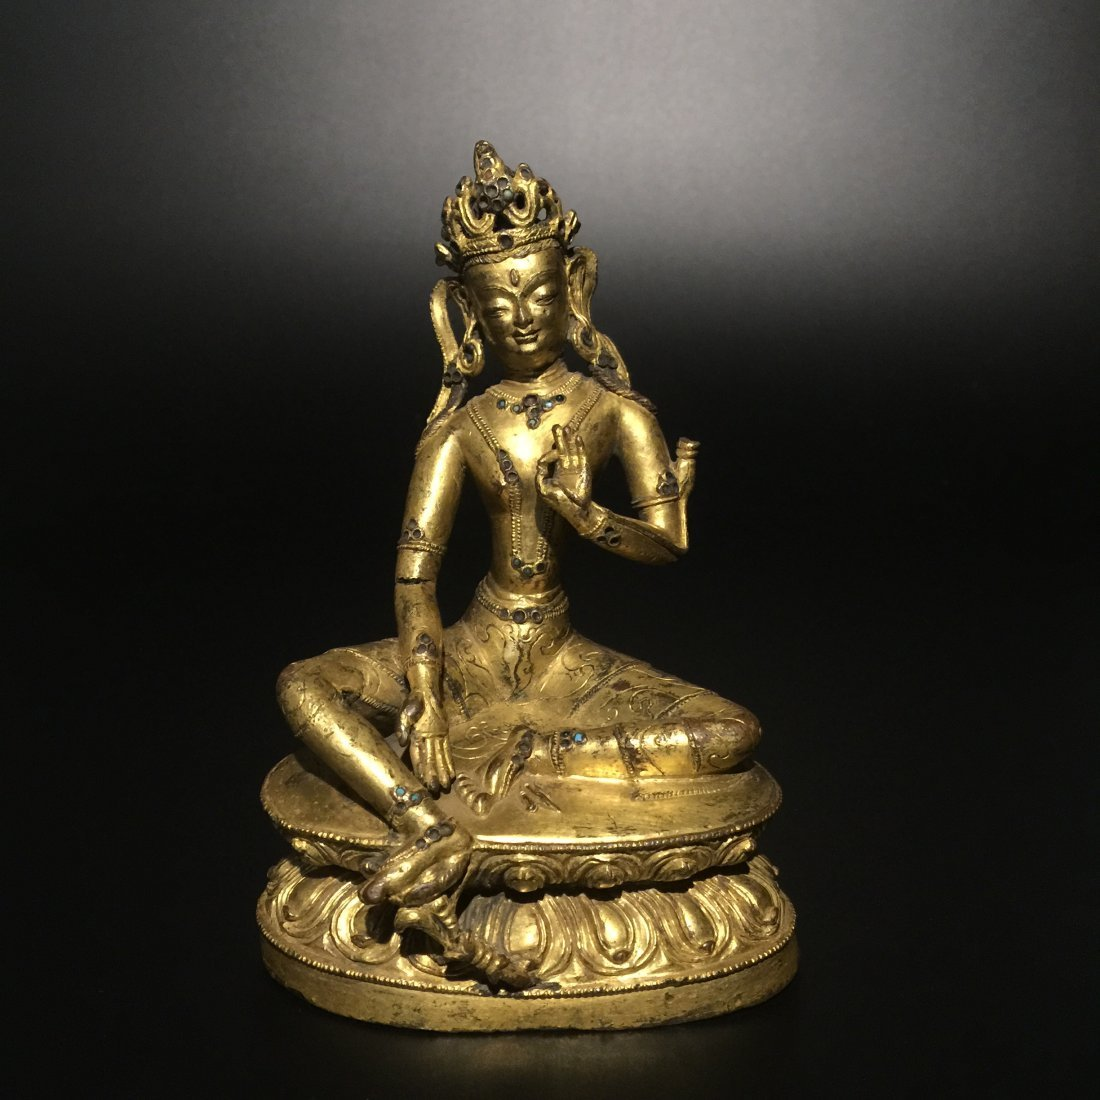 Sino-Tibetan Gilt Bronze Figure of Tara Buddha